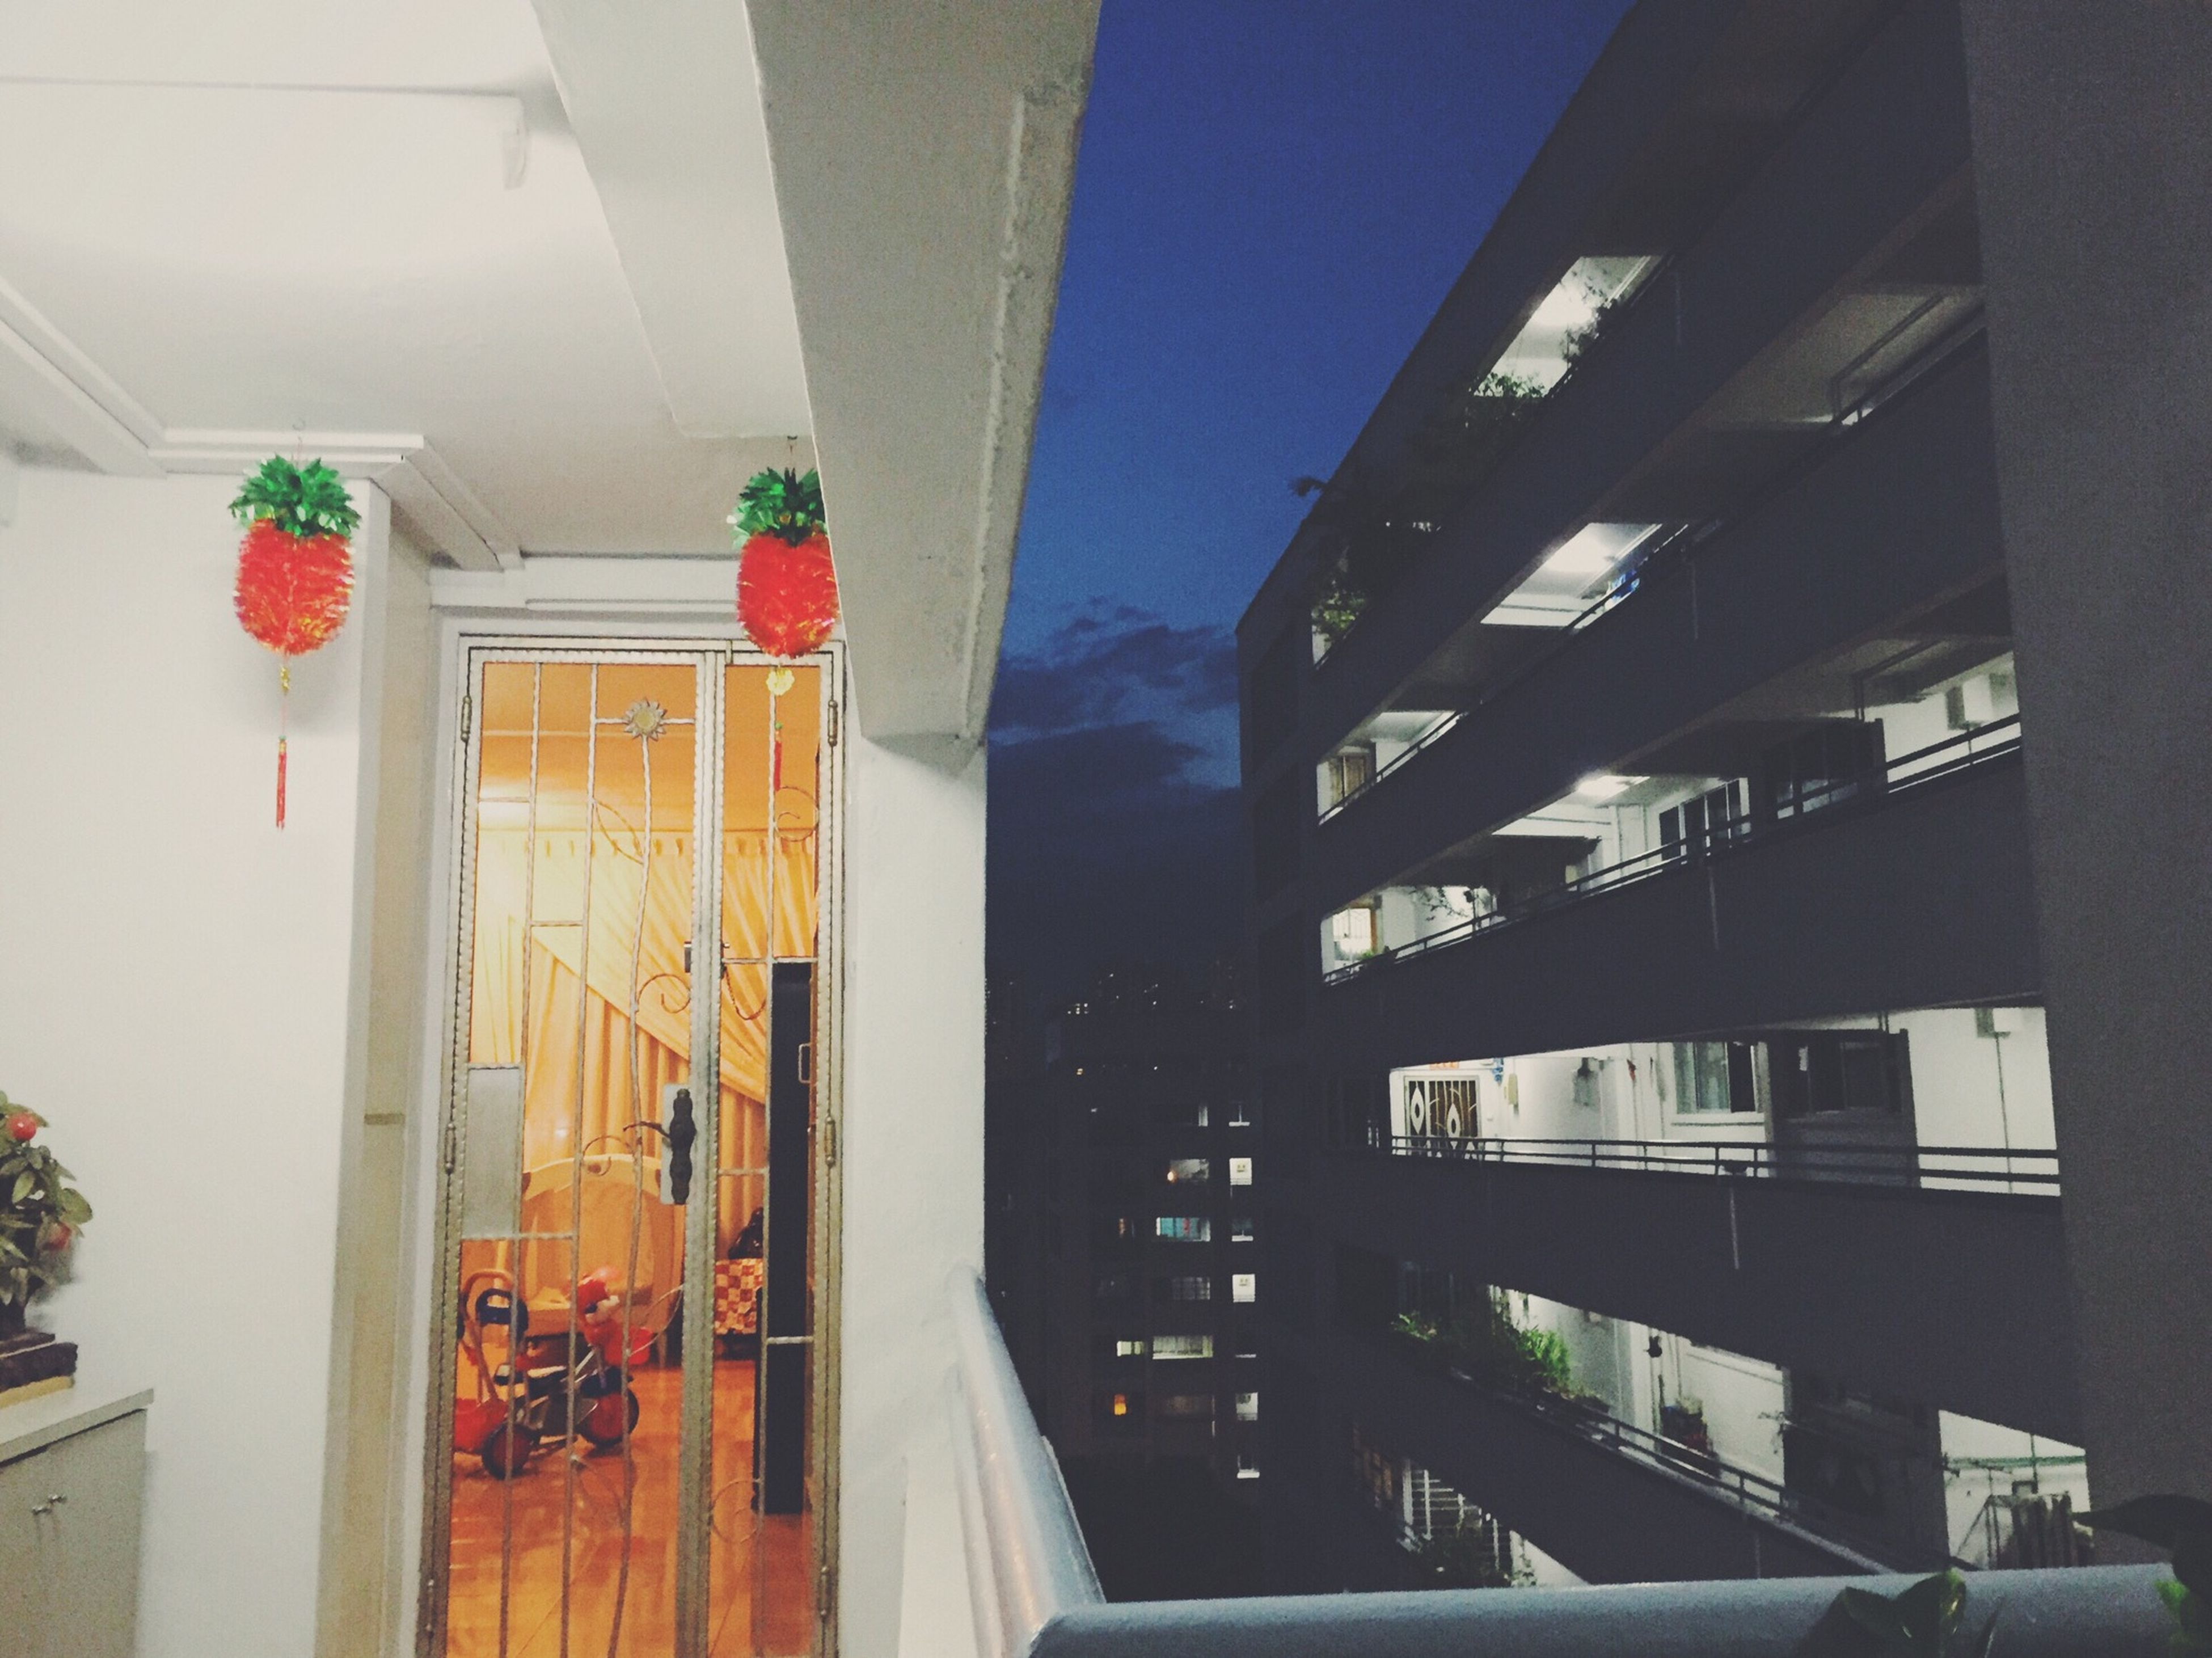 architecture, built structure, building exterior, low angle view, building, indoors, residential building, window, city, residential structure, railing, sunlight, modern, day, balcony, no people, house, in a row, ceiling, glass - material